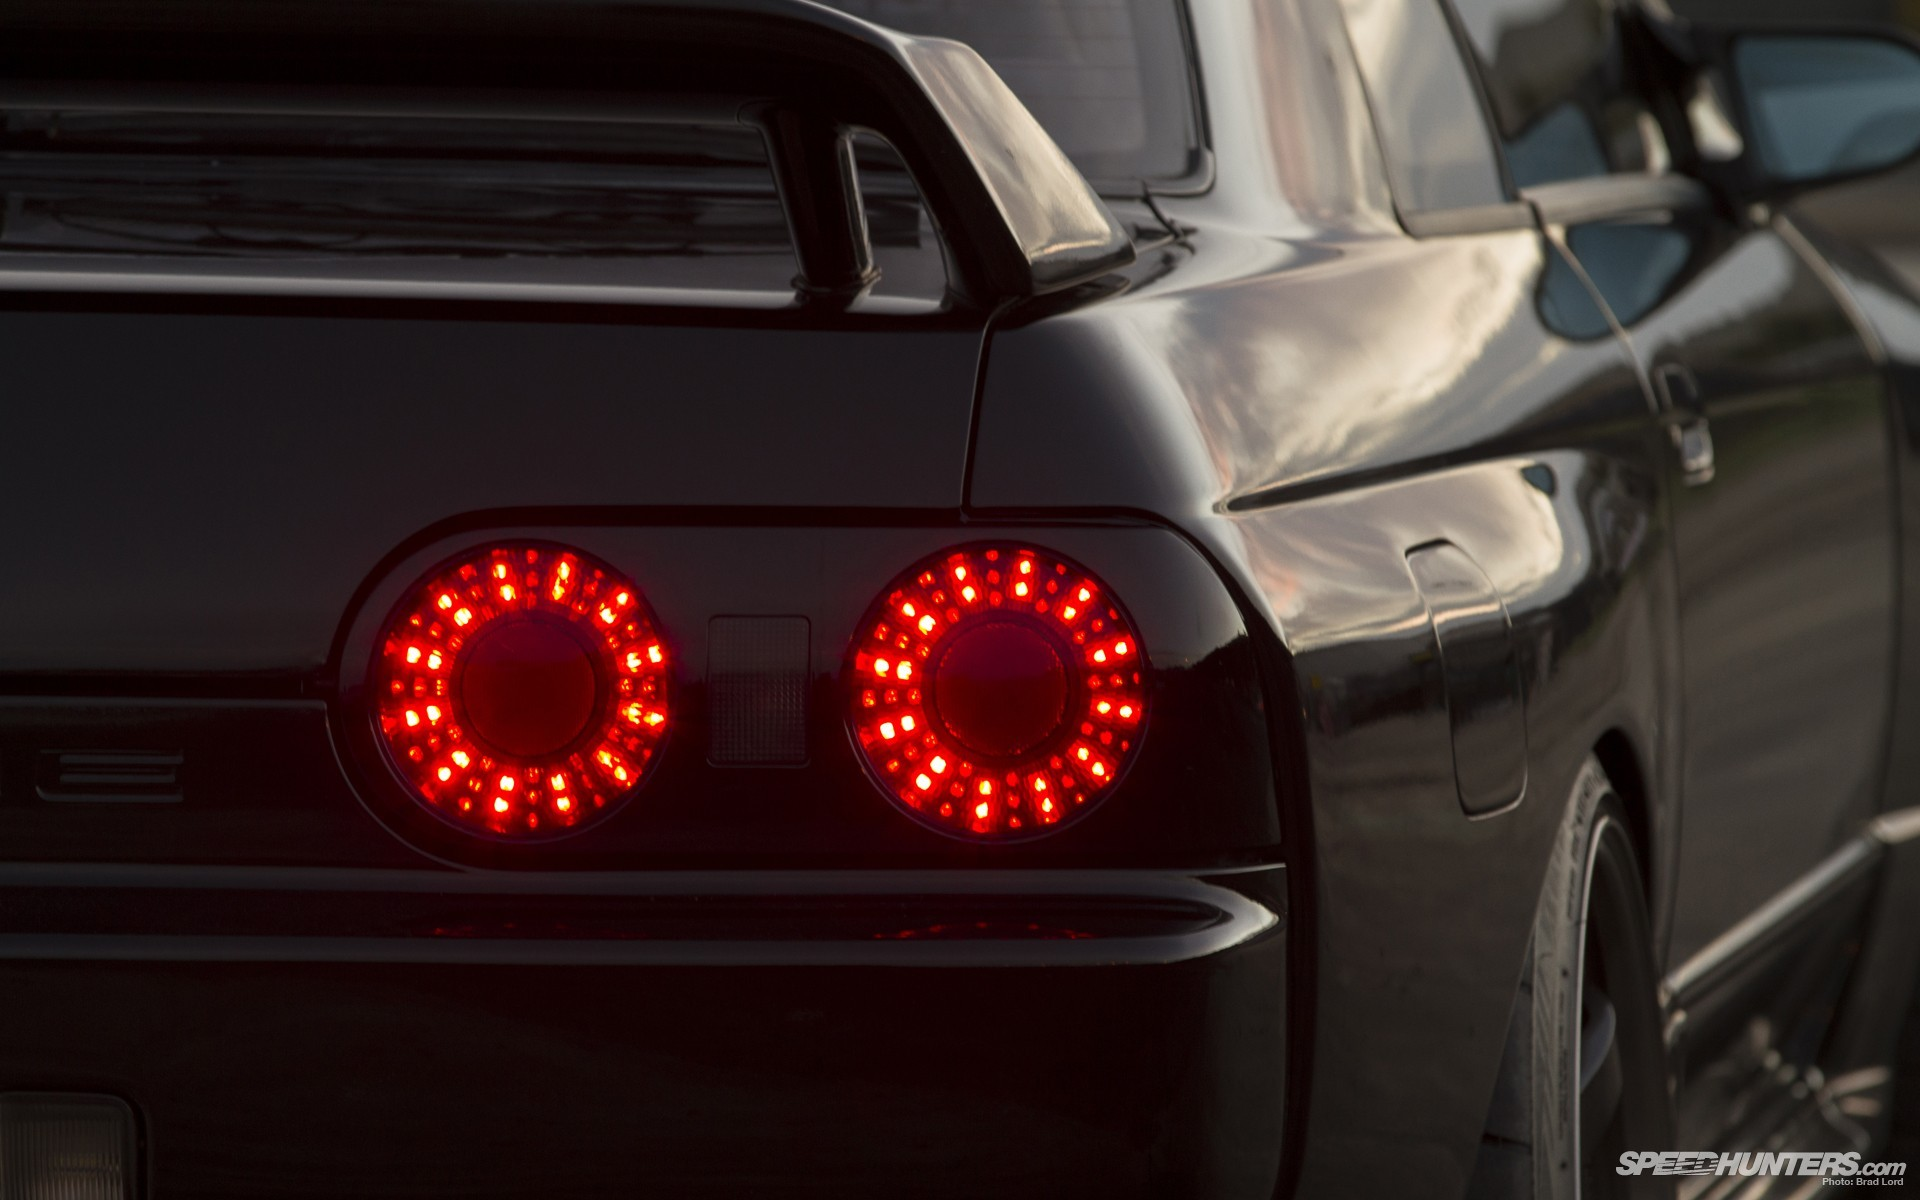 Cool Cars Drifting Wallpapers Hd Car Speedhunters Nissan Skyline R32 Wallpapers Hd